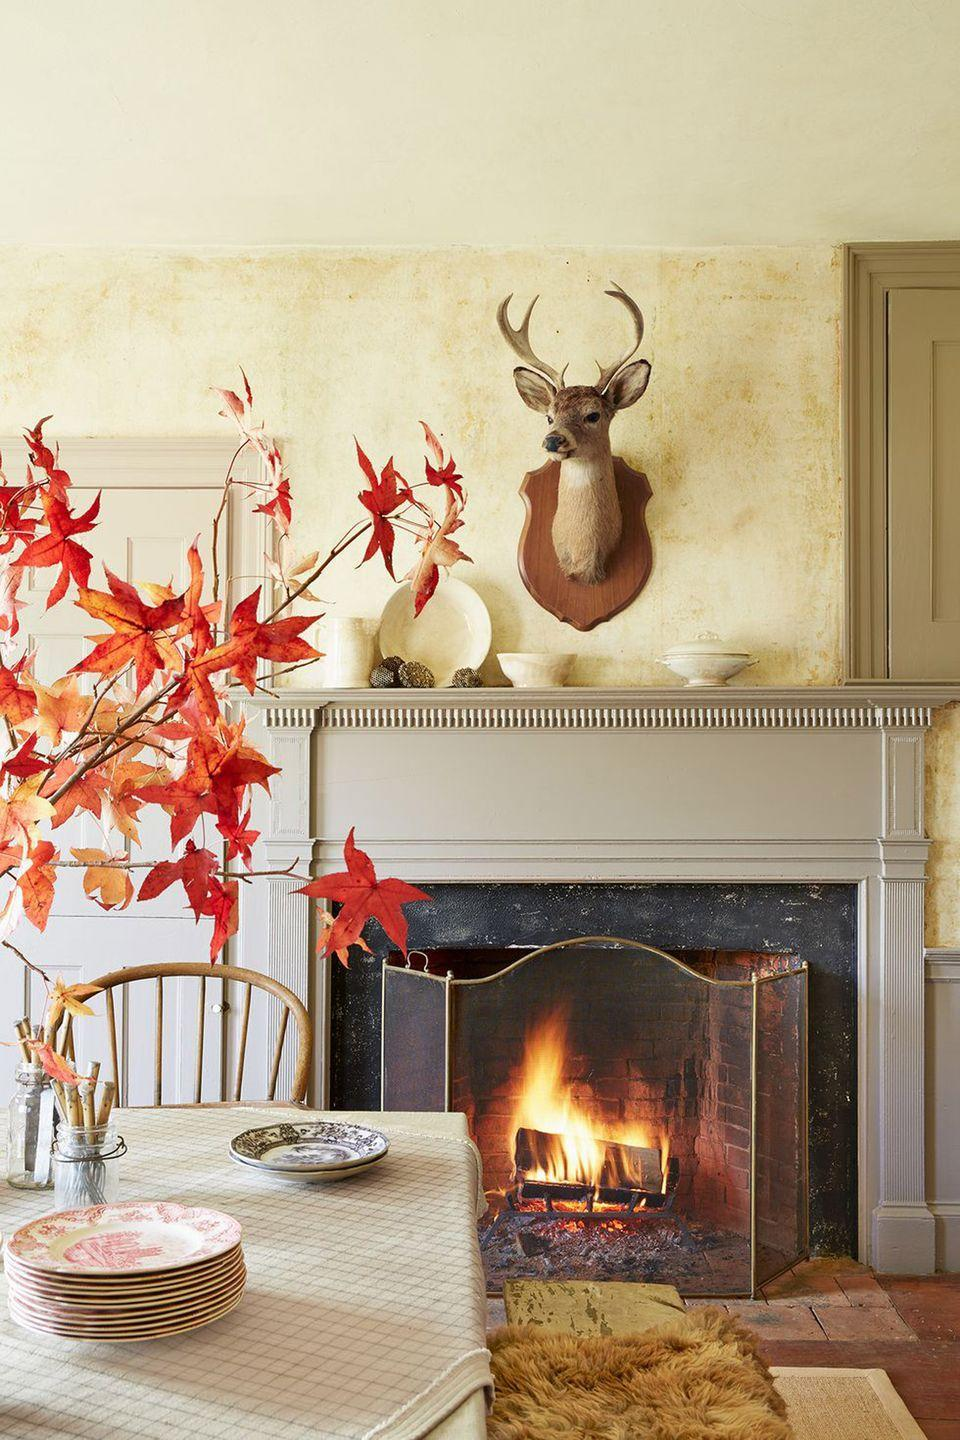 """<p>Get your home ready for both your dinner party and the fall season in general. Start by sprucing up your <a href=""""https://www.countryliving.com/diy-crafts/g2610/fall-door-decorations/"""" rel=""""nofollow noopener"""" target=""""_blank"""" data-ylk=""""slk:front door decorations"""" class=""""link rapid-noclick-resp"""">front door decorations</a> and then <a href=""""https://www.countryliving.com/home-design/decorating-ideas/advice/g1536/fall-decorating-ideas/"""" rel=""""nofollow noopener"""" target=""""_blank"""" data-ylk=""""slk:work your way inside."""" class=""""link rapid-noclick-resp"""">work your way inside.</a> You don't have to go overboard—a few smart <a href=""""https://www.countryliving.com/home-design/decorating-ideas/g2621/fall-porch-decorating/"""" rel=""""nofollow noopener"""" target=""""_blank"""" data-ylk=""""slk:autumn additions"""" class=""""link rapid-noclick-resp"""">autumn additions</a> can make a big impact. We love the look of these leafy branches in a vase, and the fire is a lovely touch as well.</p>"""